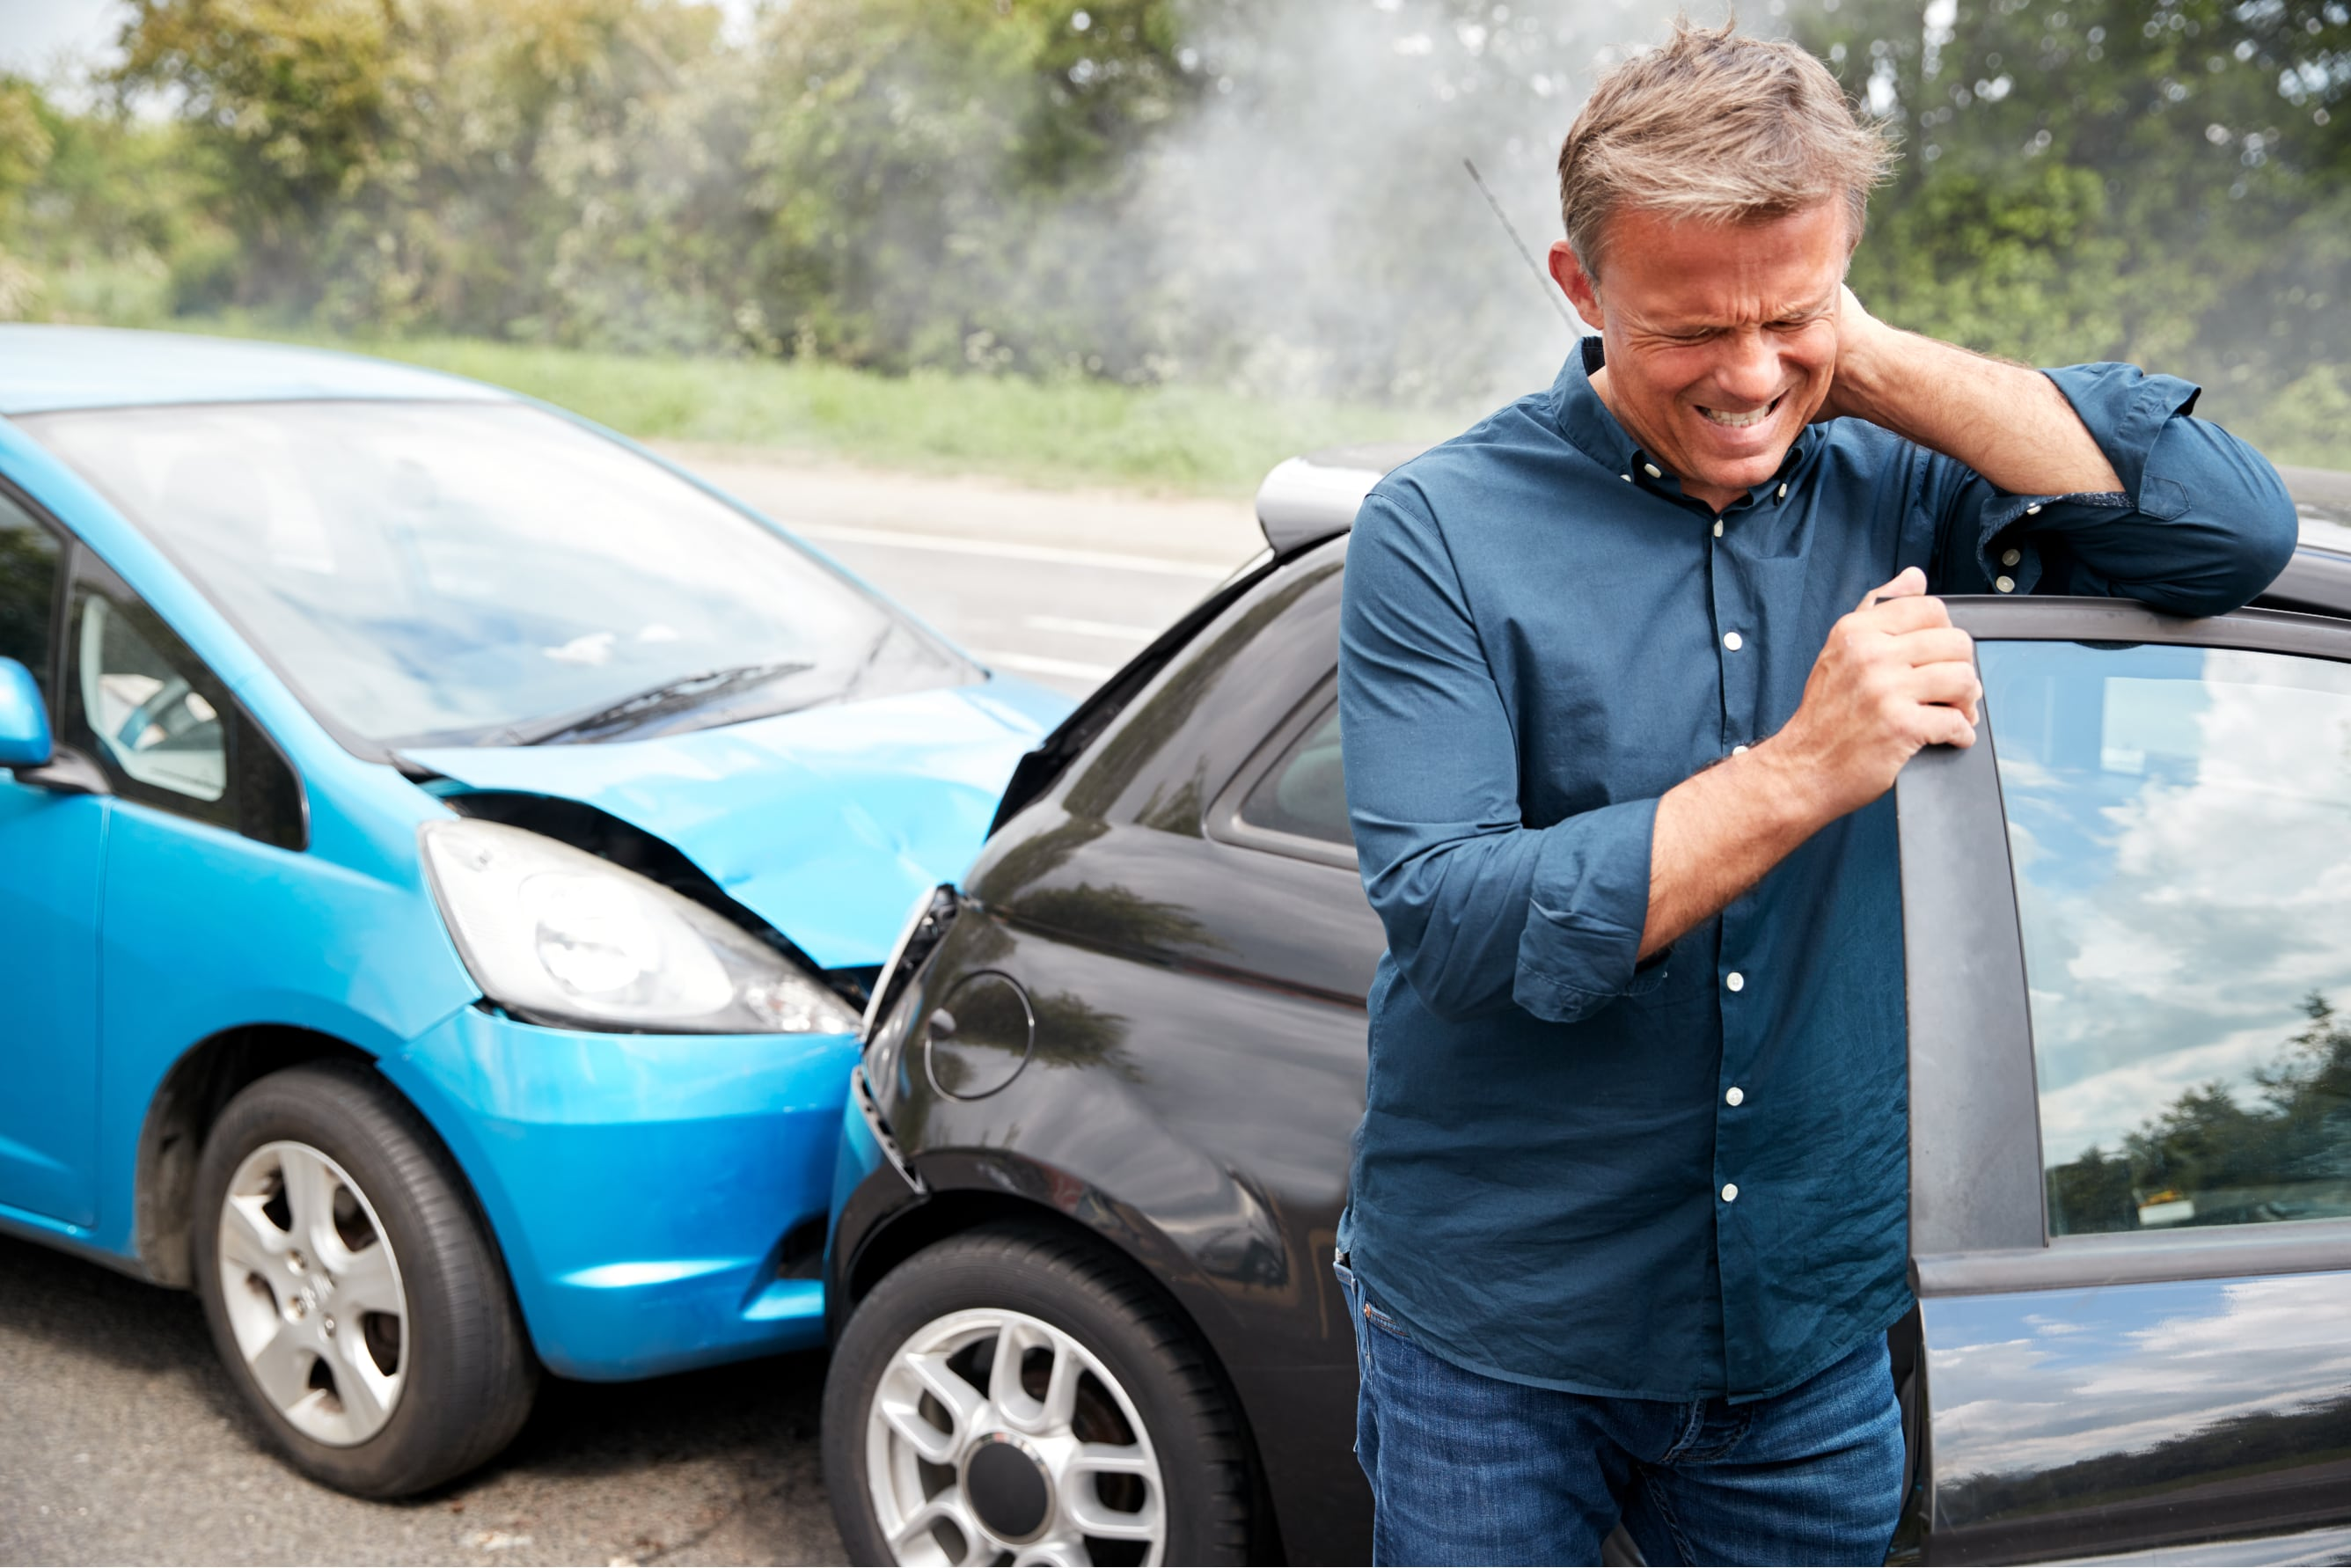 Car accidents are one of the most common ways whiplash trauma occurs in today's society. Whiplash damages the soft tissues of the neck and can lead to postural faults, chronic pain syndromes, emotional imbalance, and other chronic health issues.